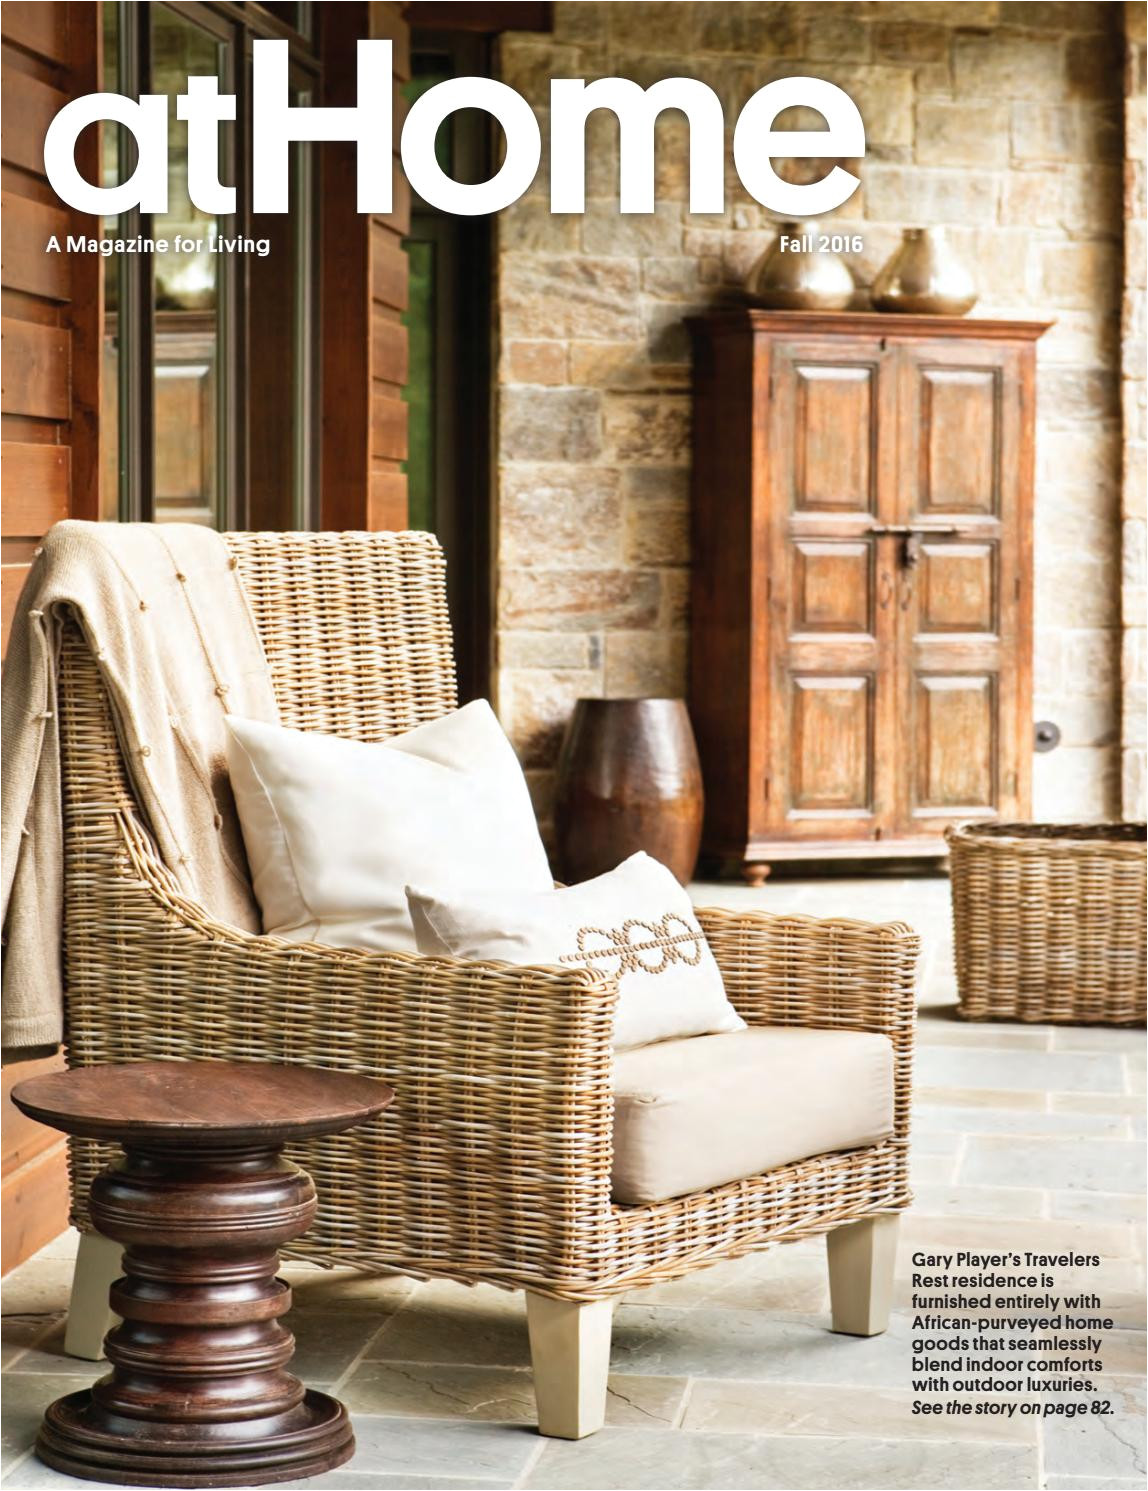 Furniture Consignment Stores Augusta Ga at Home Fall 2016 by Community Journals issuu